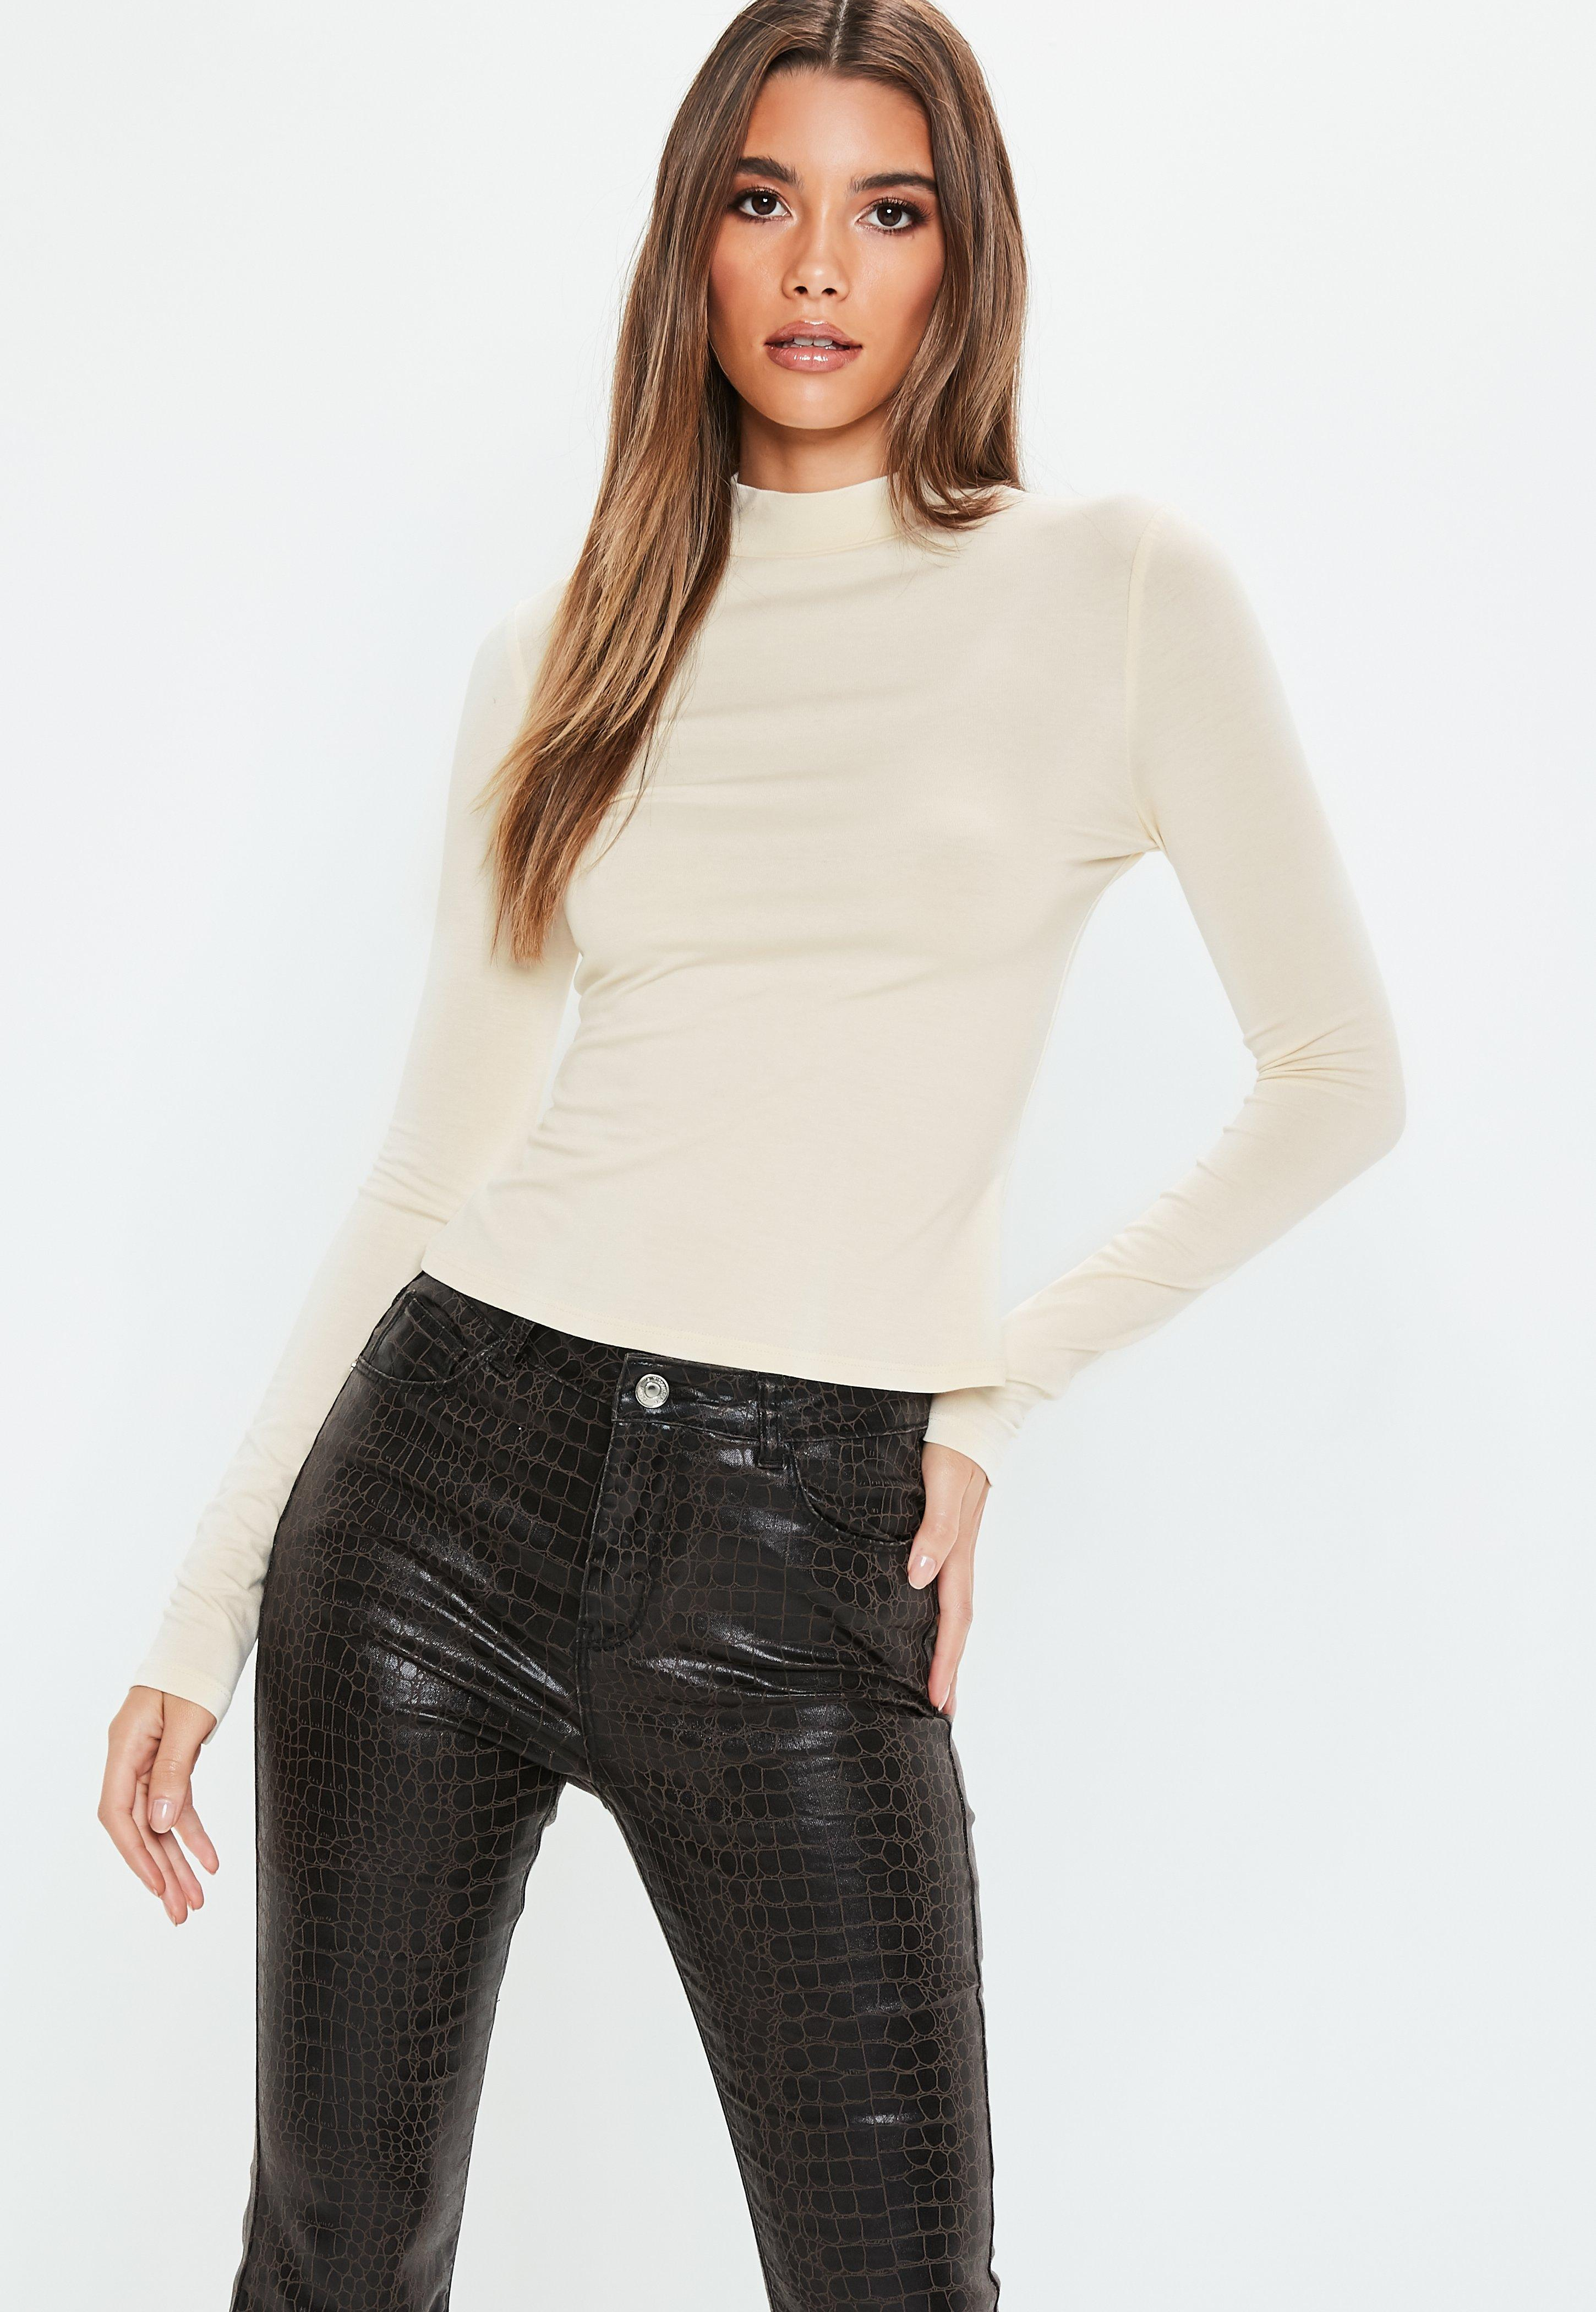 f573e115546ebb Missguided - Natural Nude Long Sleeve Turtle Neck Top - Lyst. View  fullscreen